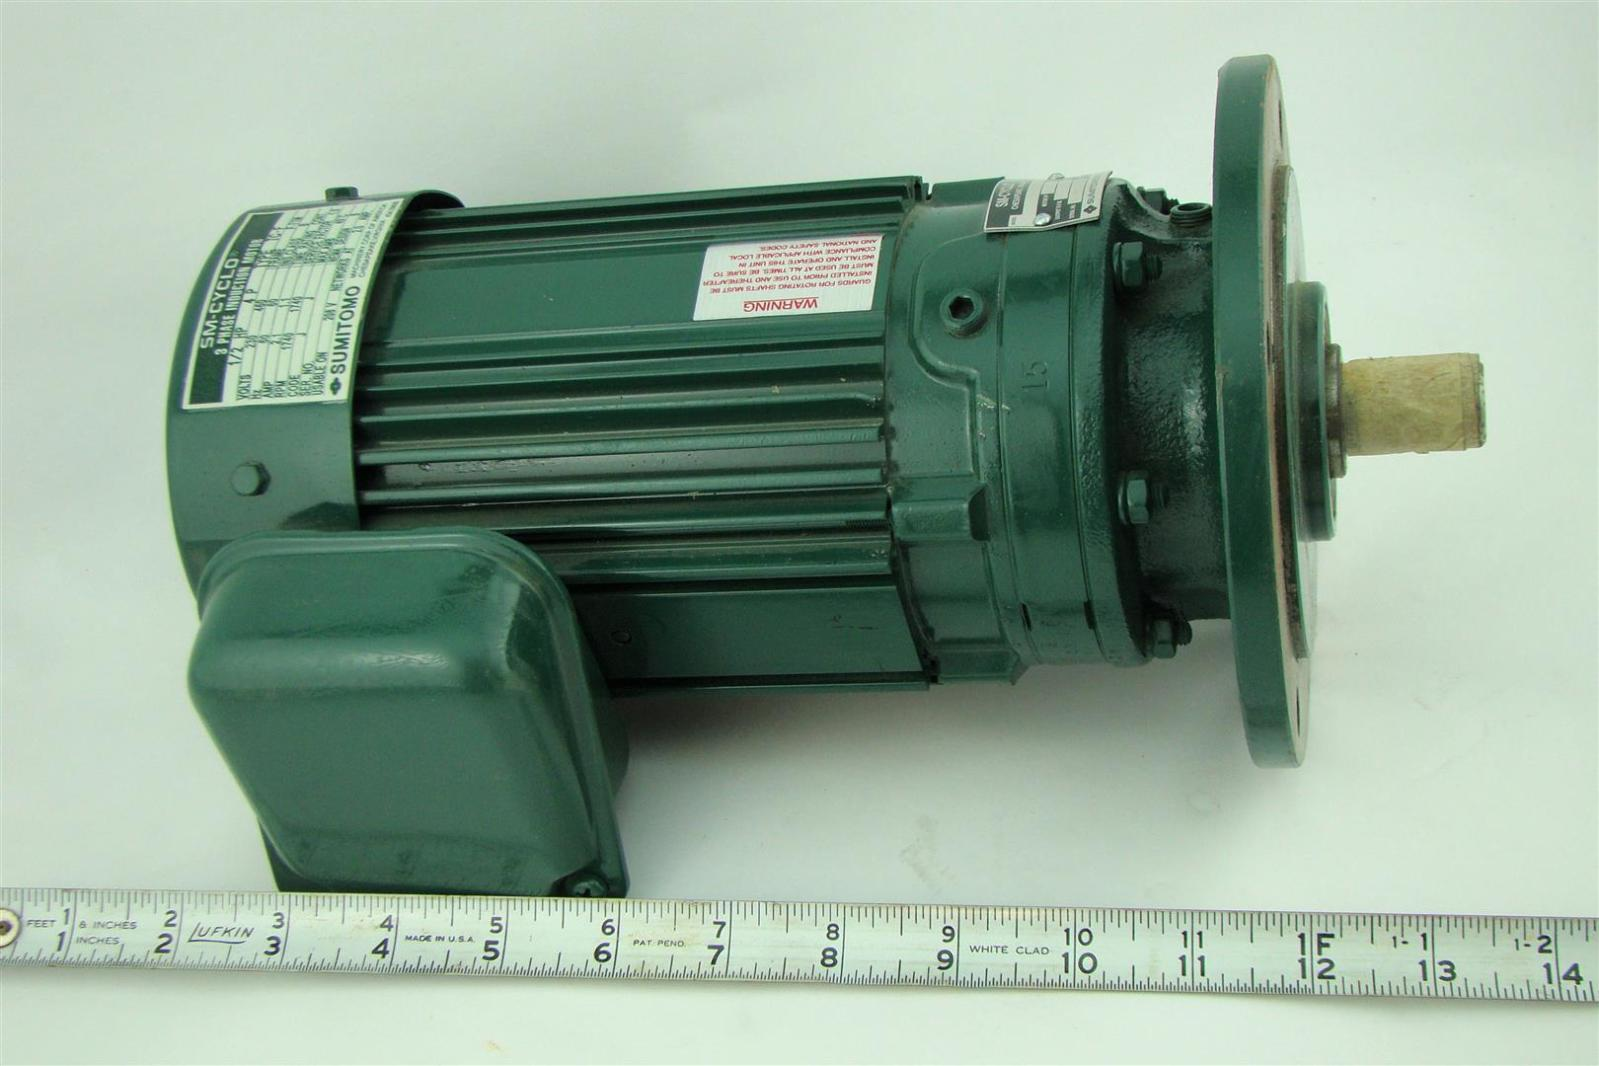 Sumitomo Sm Cyclo 3ph Induction Motor 1 2hp 230 460v 2 1a 1740rpm Cnvm054085ya1 Ebay